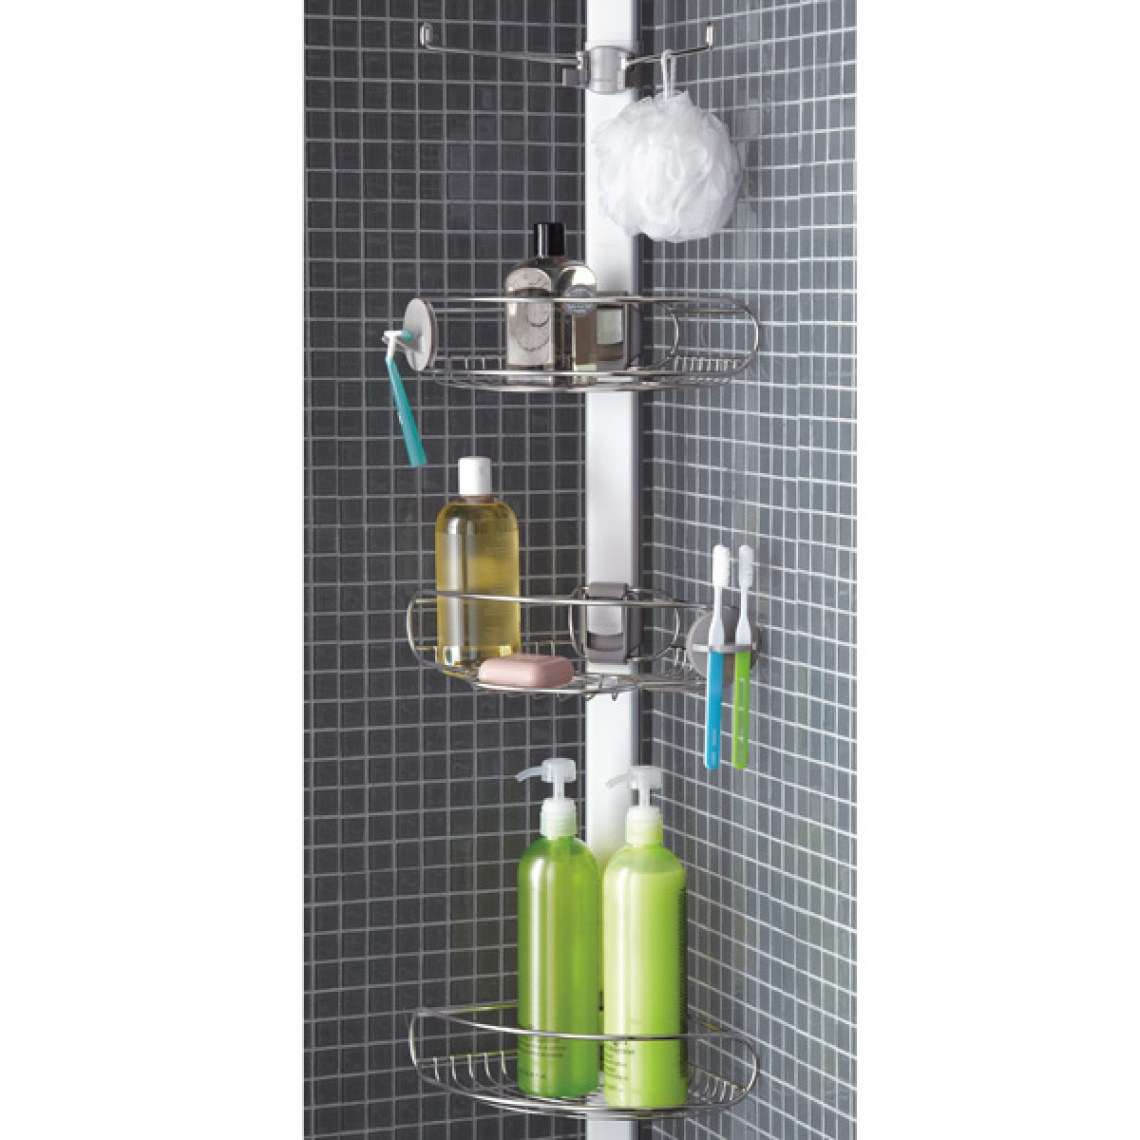 Image Result For Stainless Steel Tension Pole Shower Caddy Rust Proof